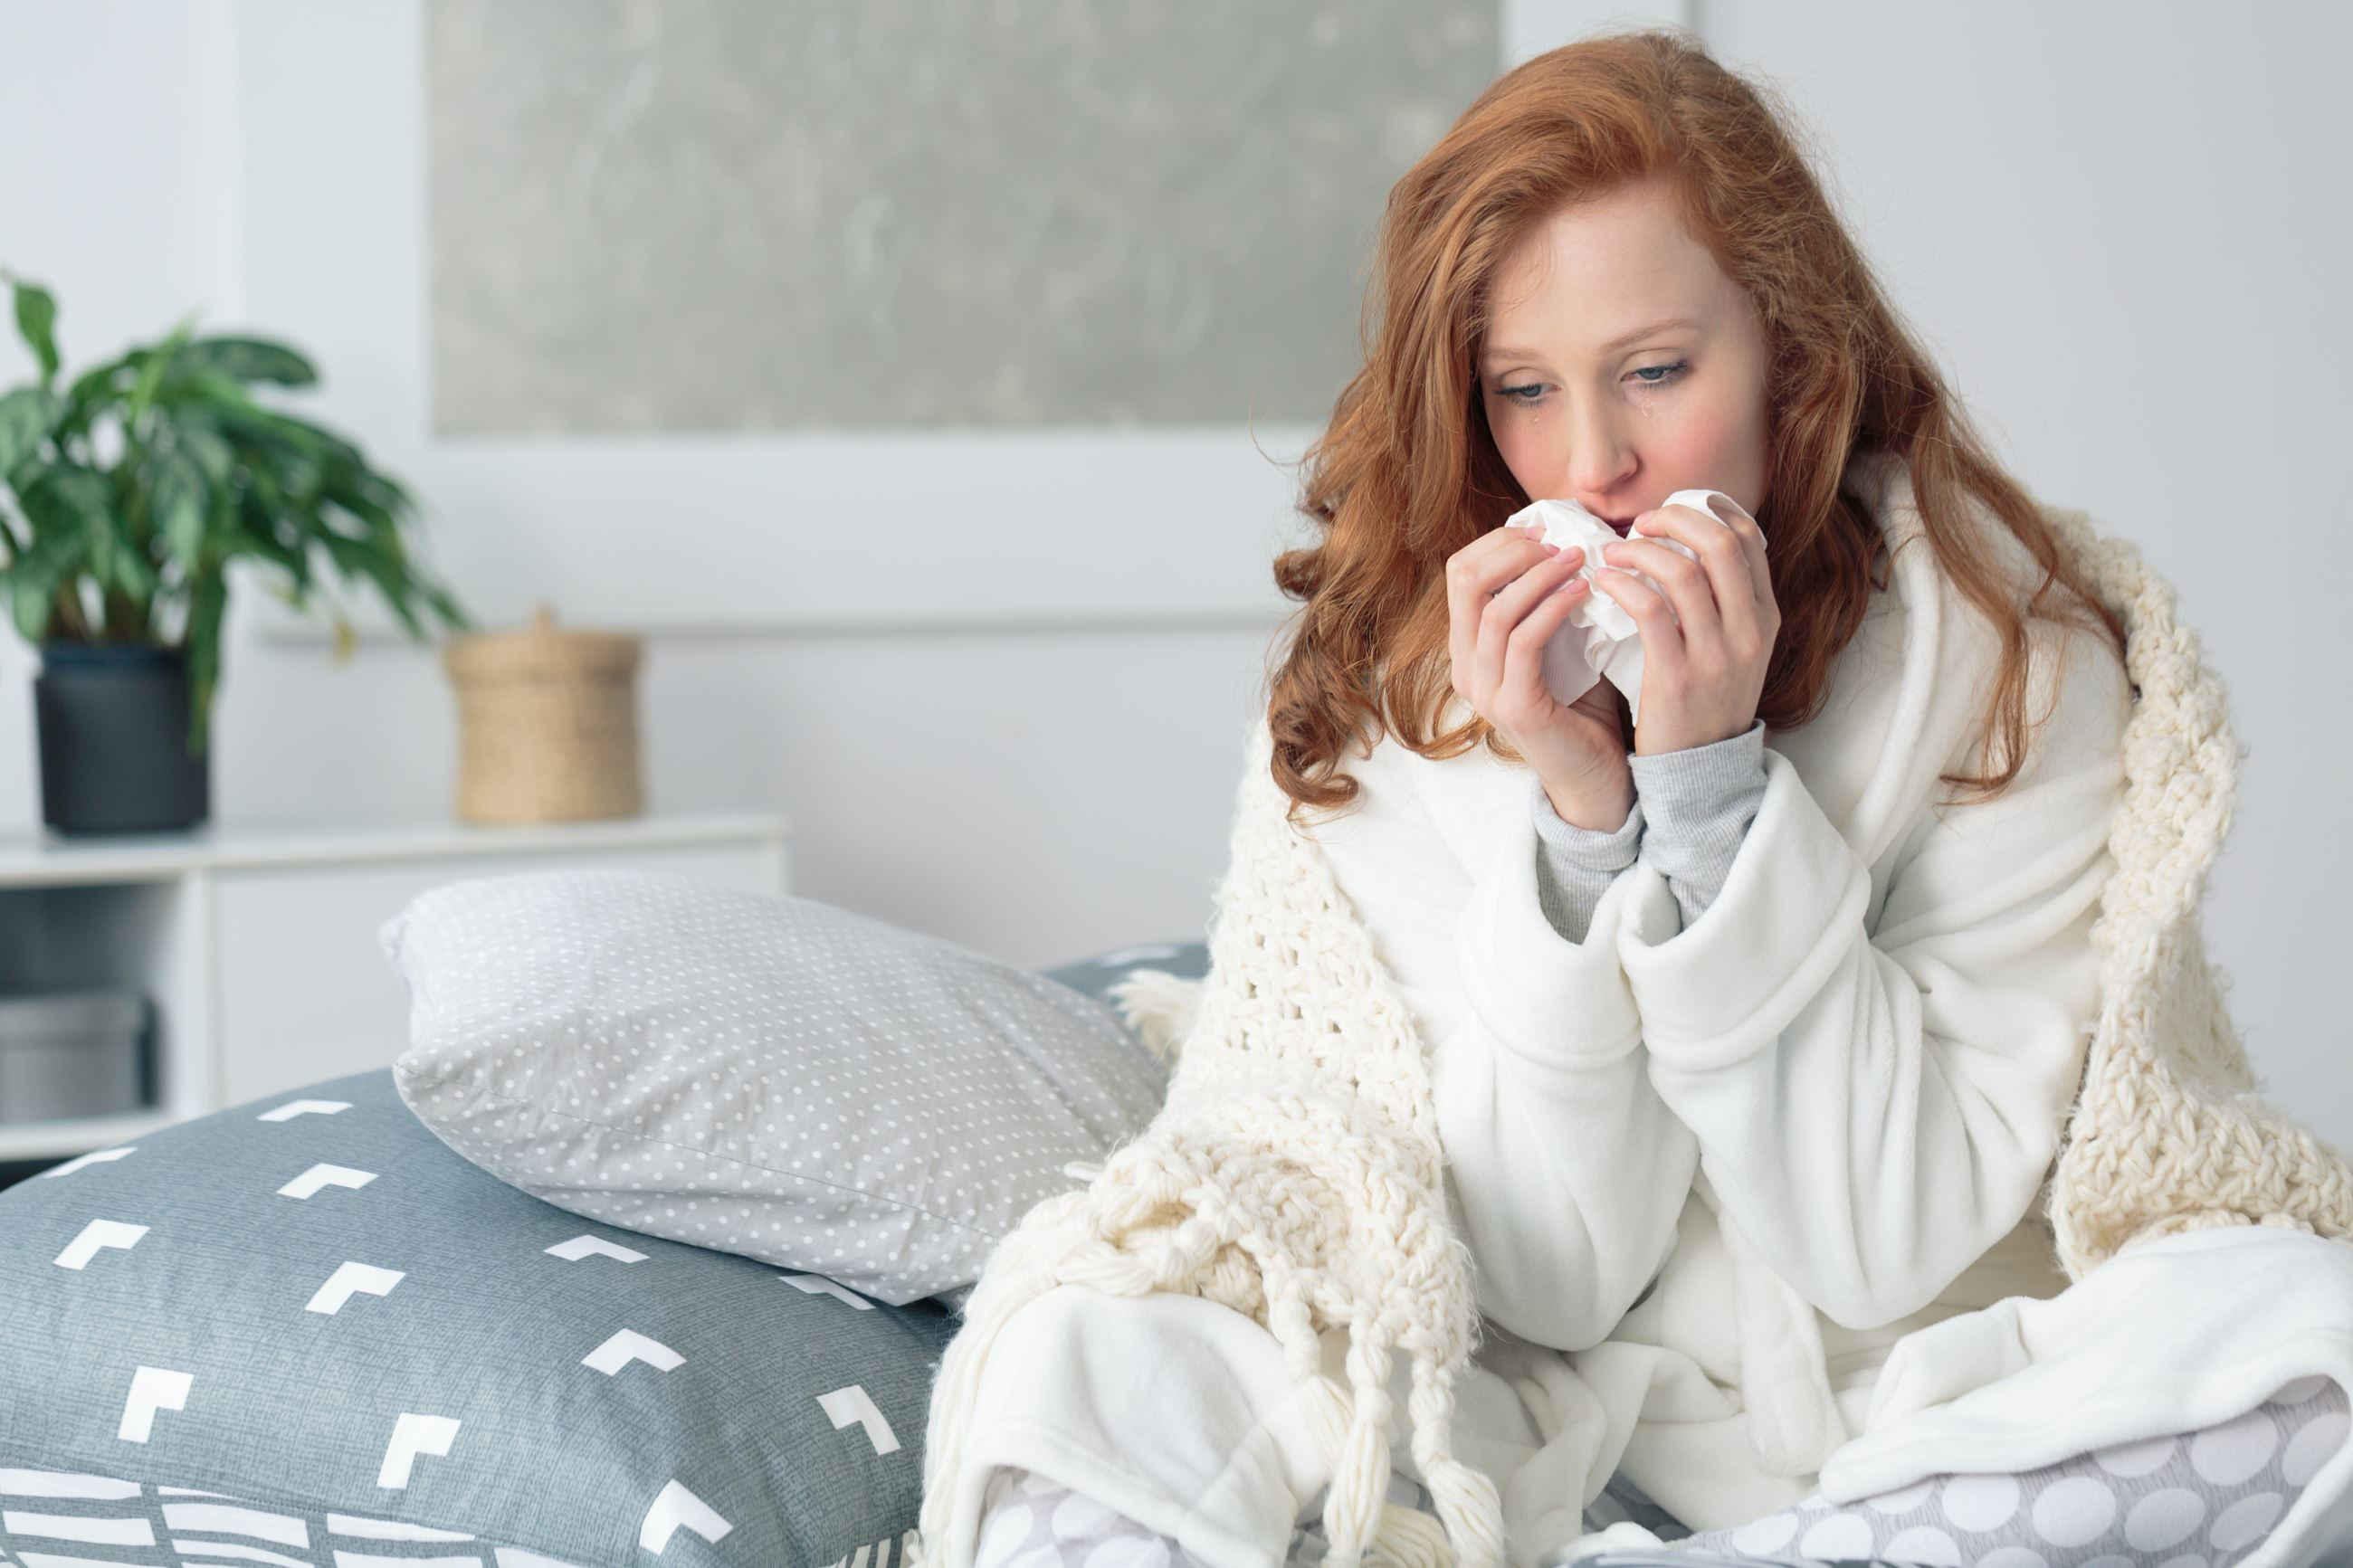 woman coughing in bed Opens in new window